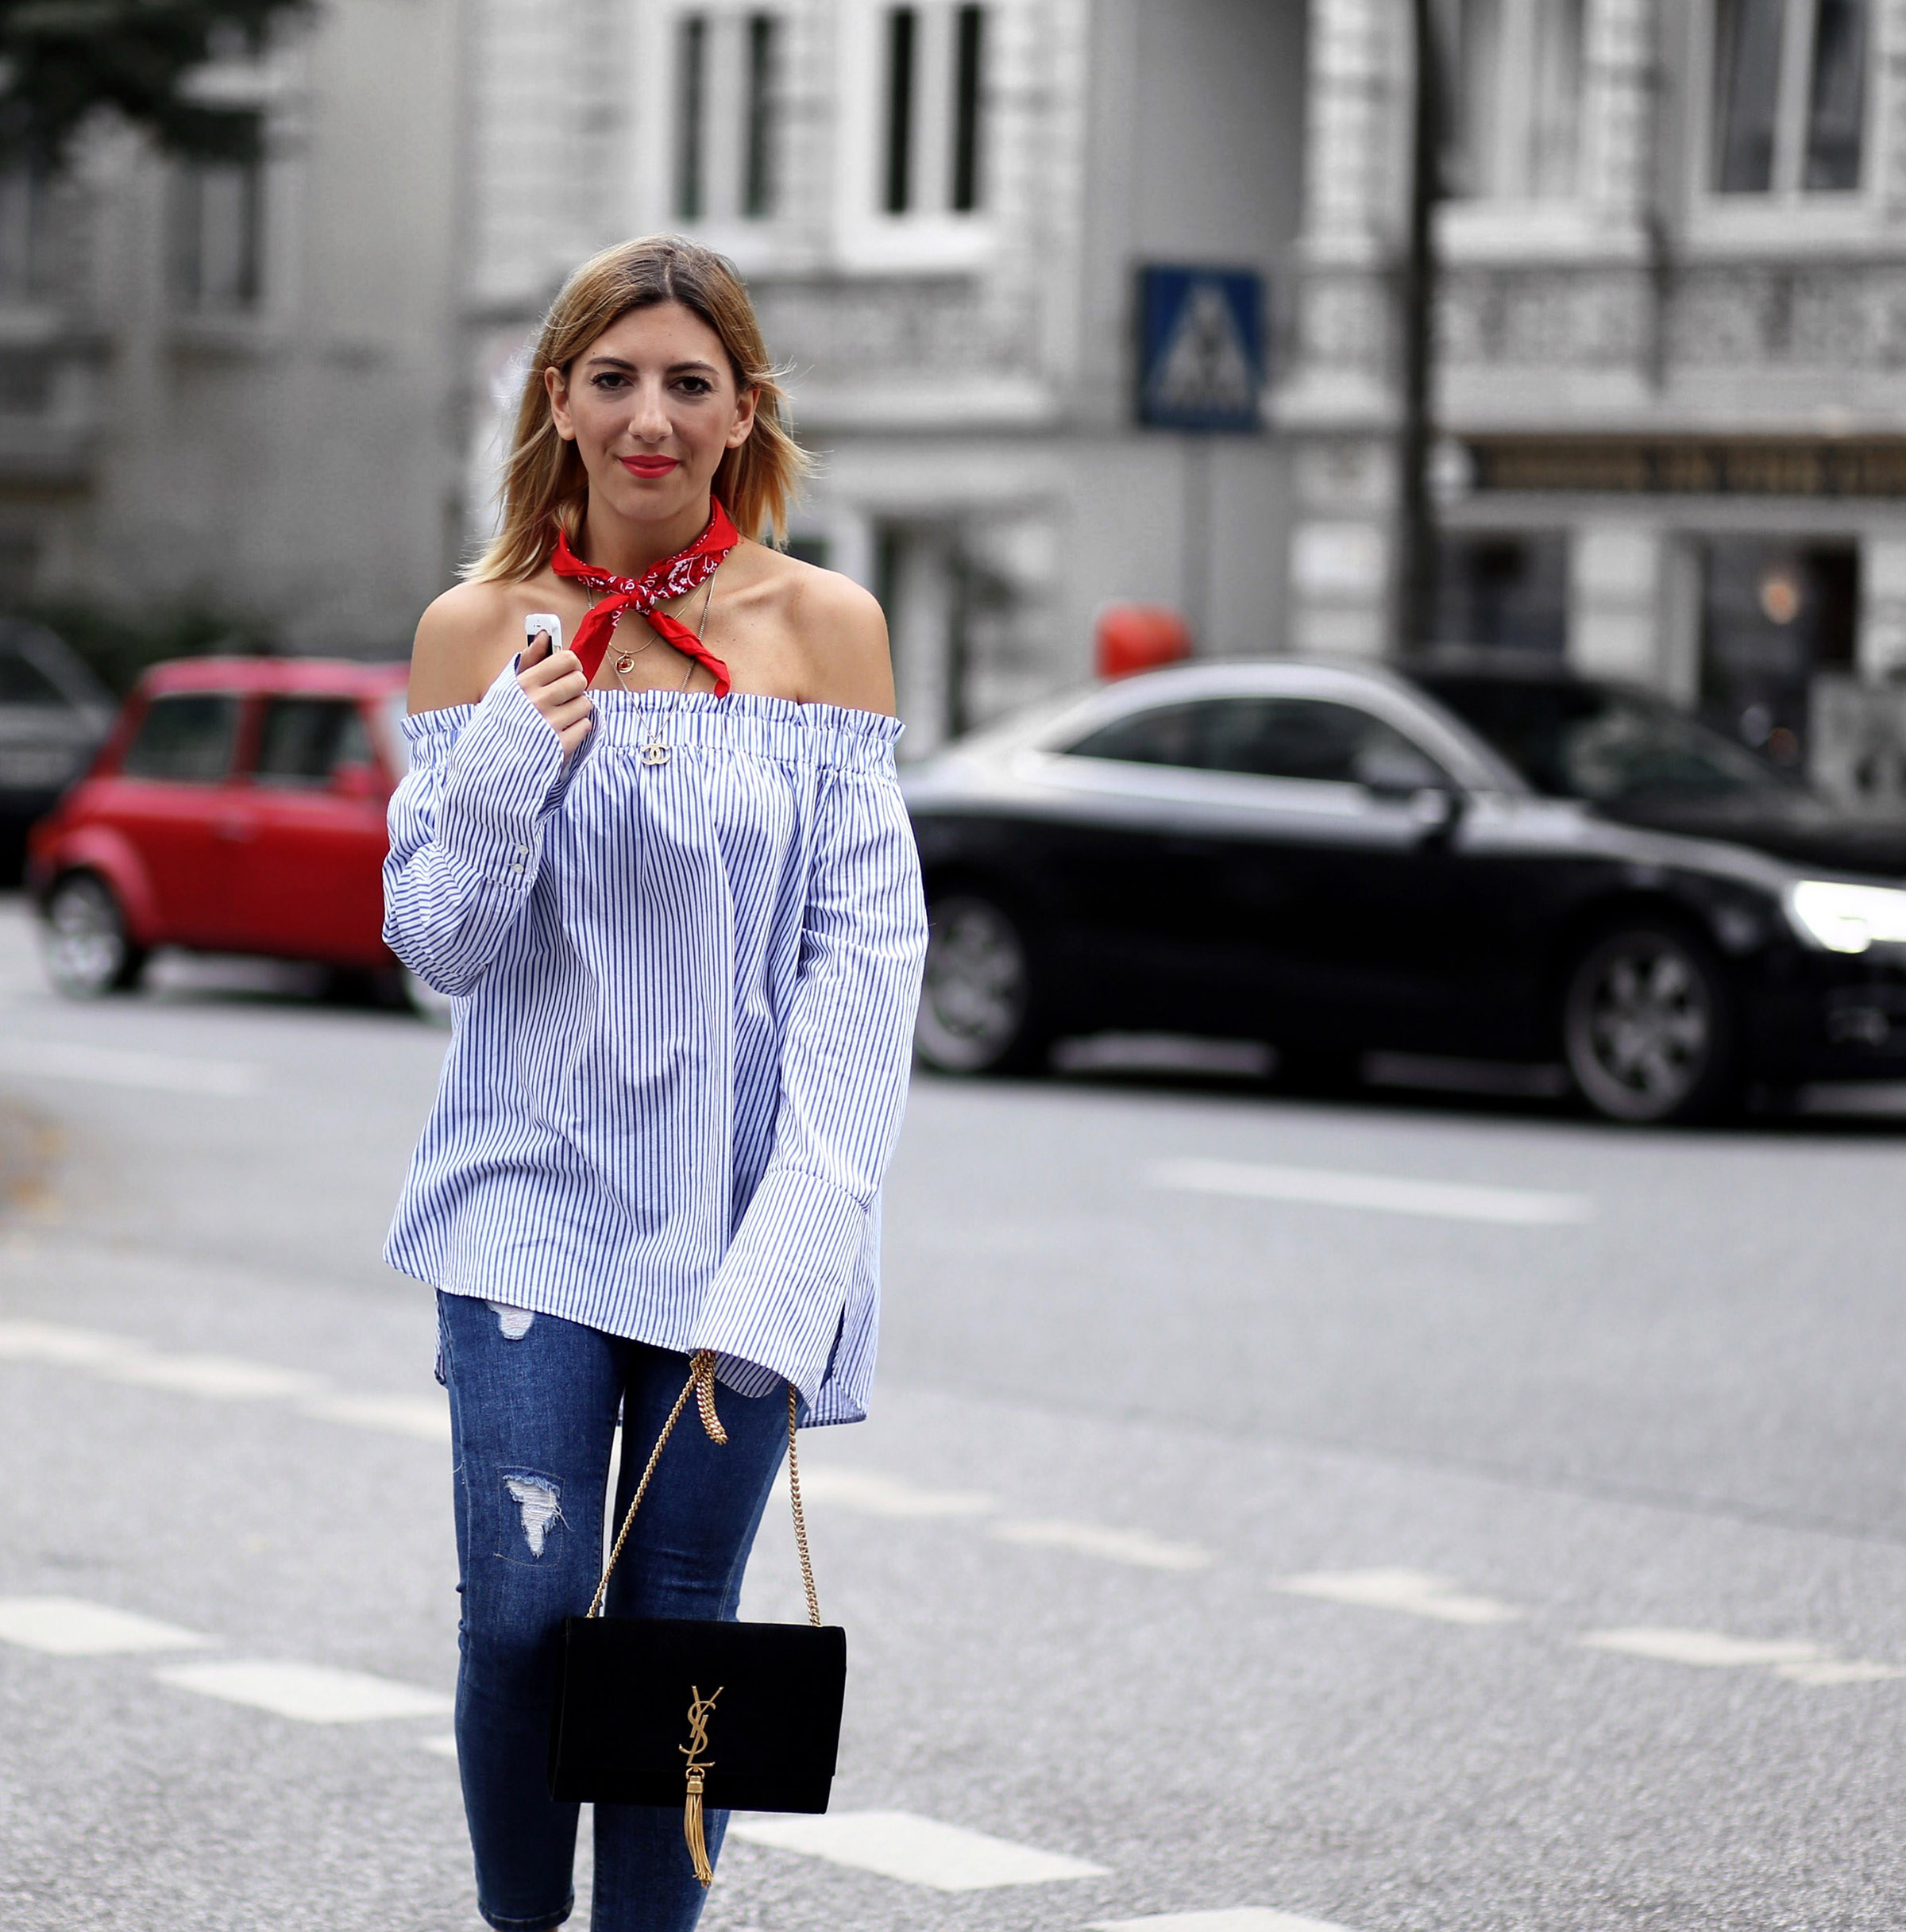 Streetstyle-Blog-Germany